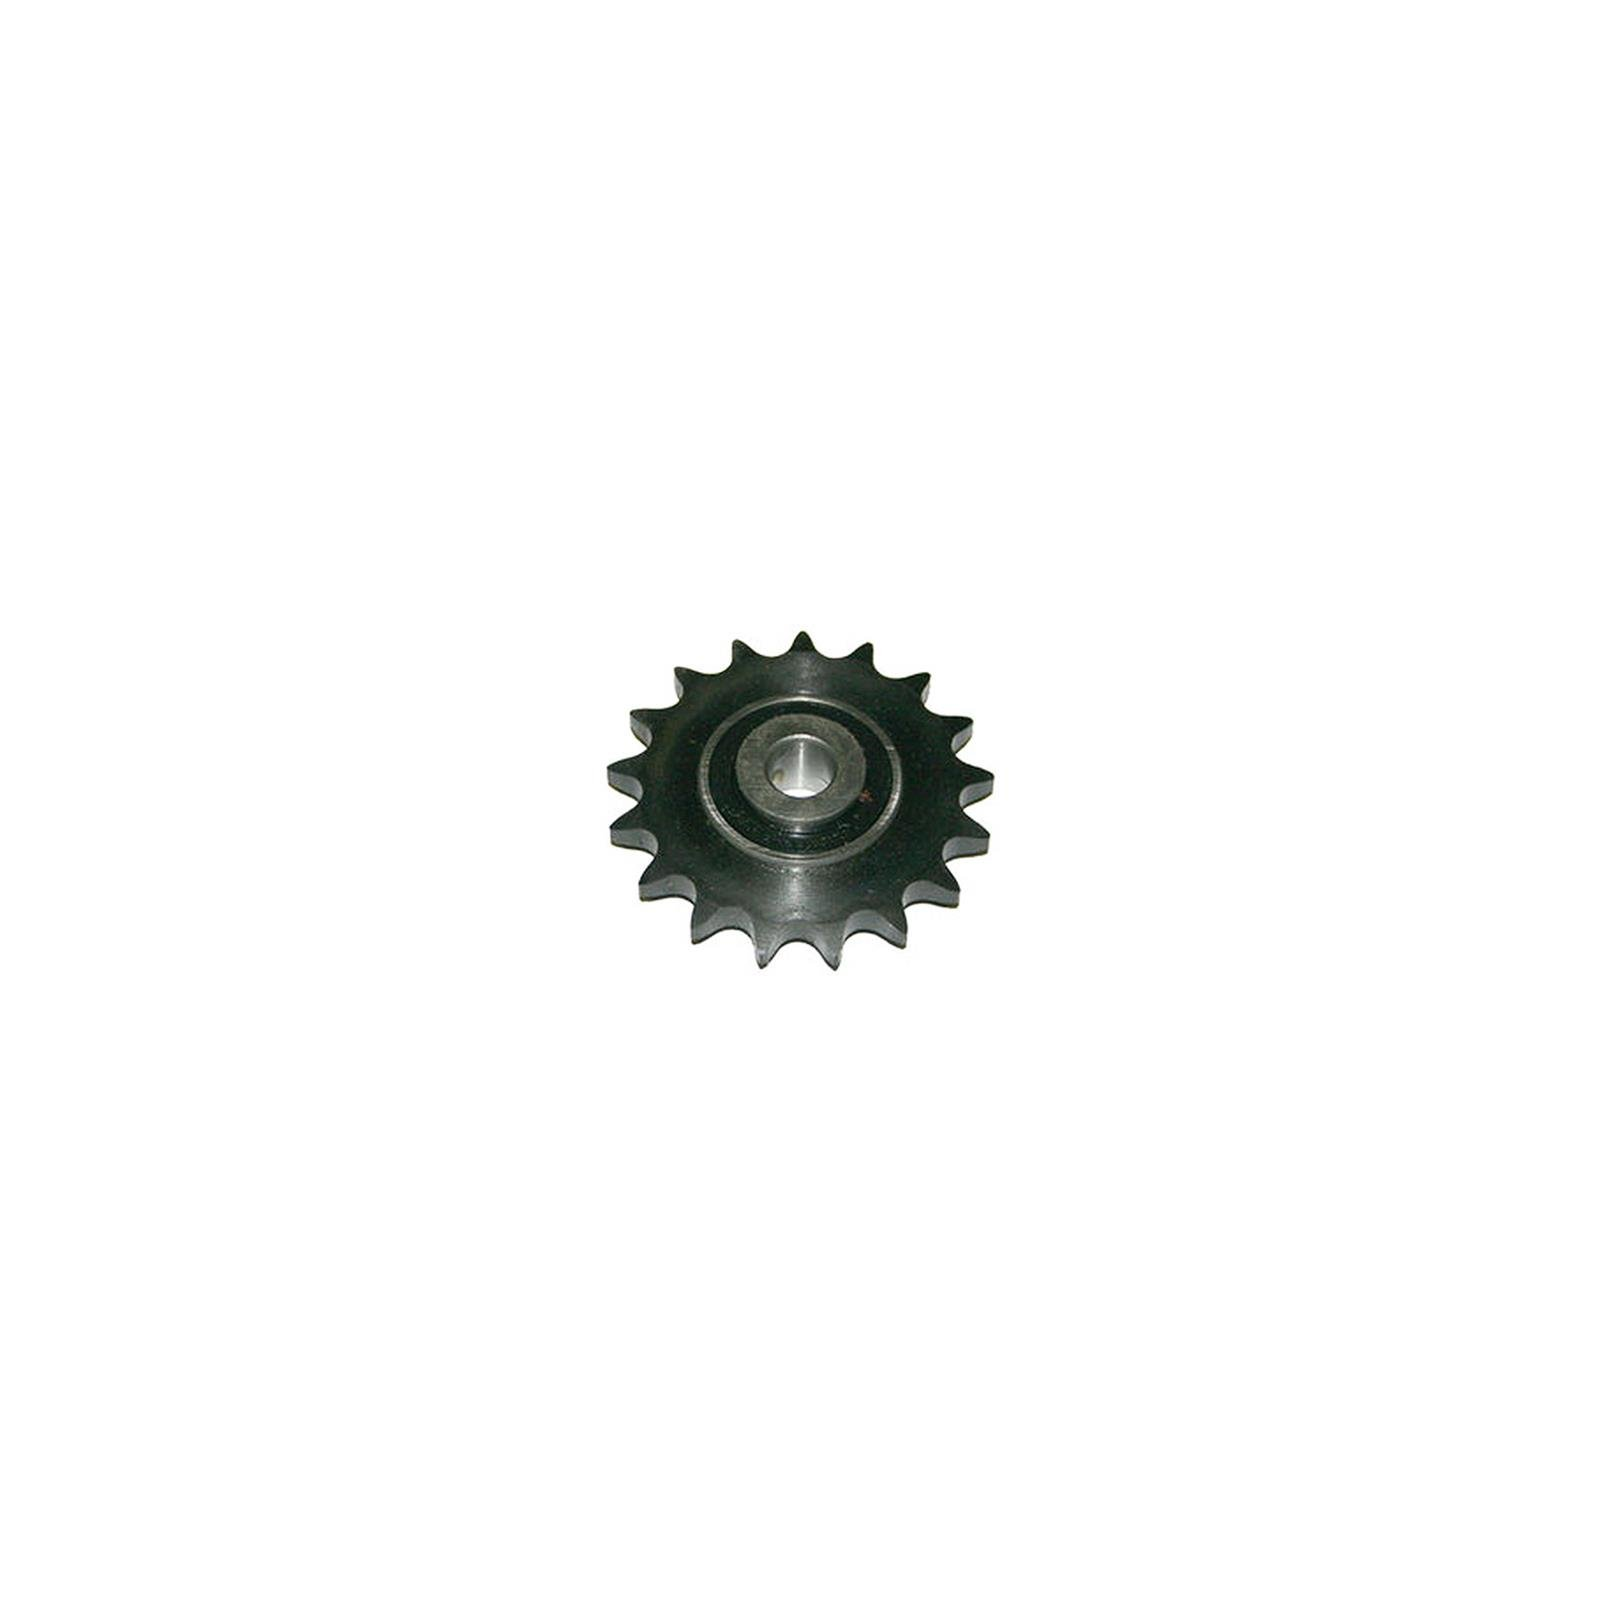 DOUBLE HH 86130 13T #60 Idler Sprocket